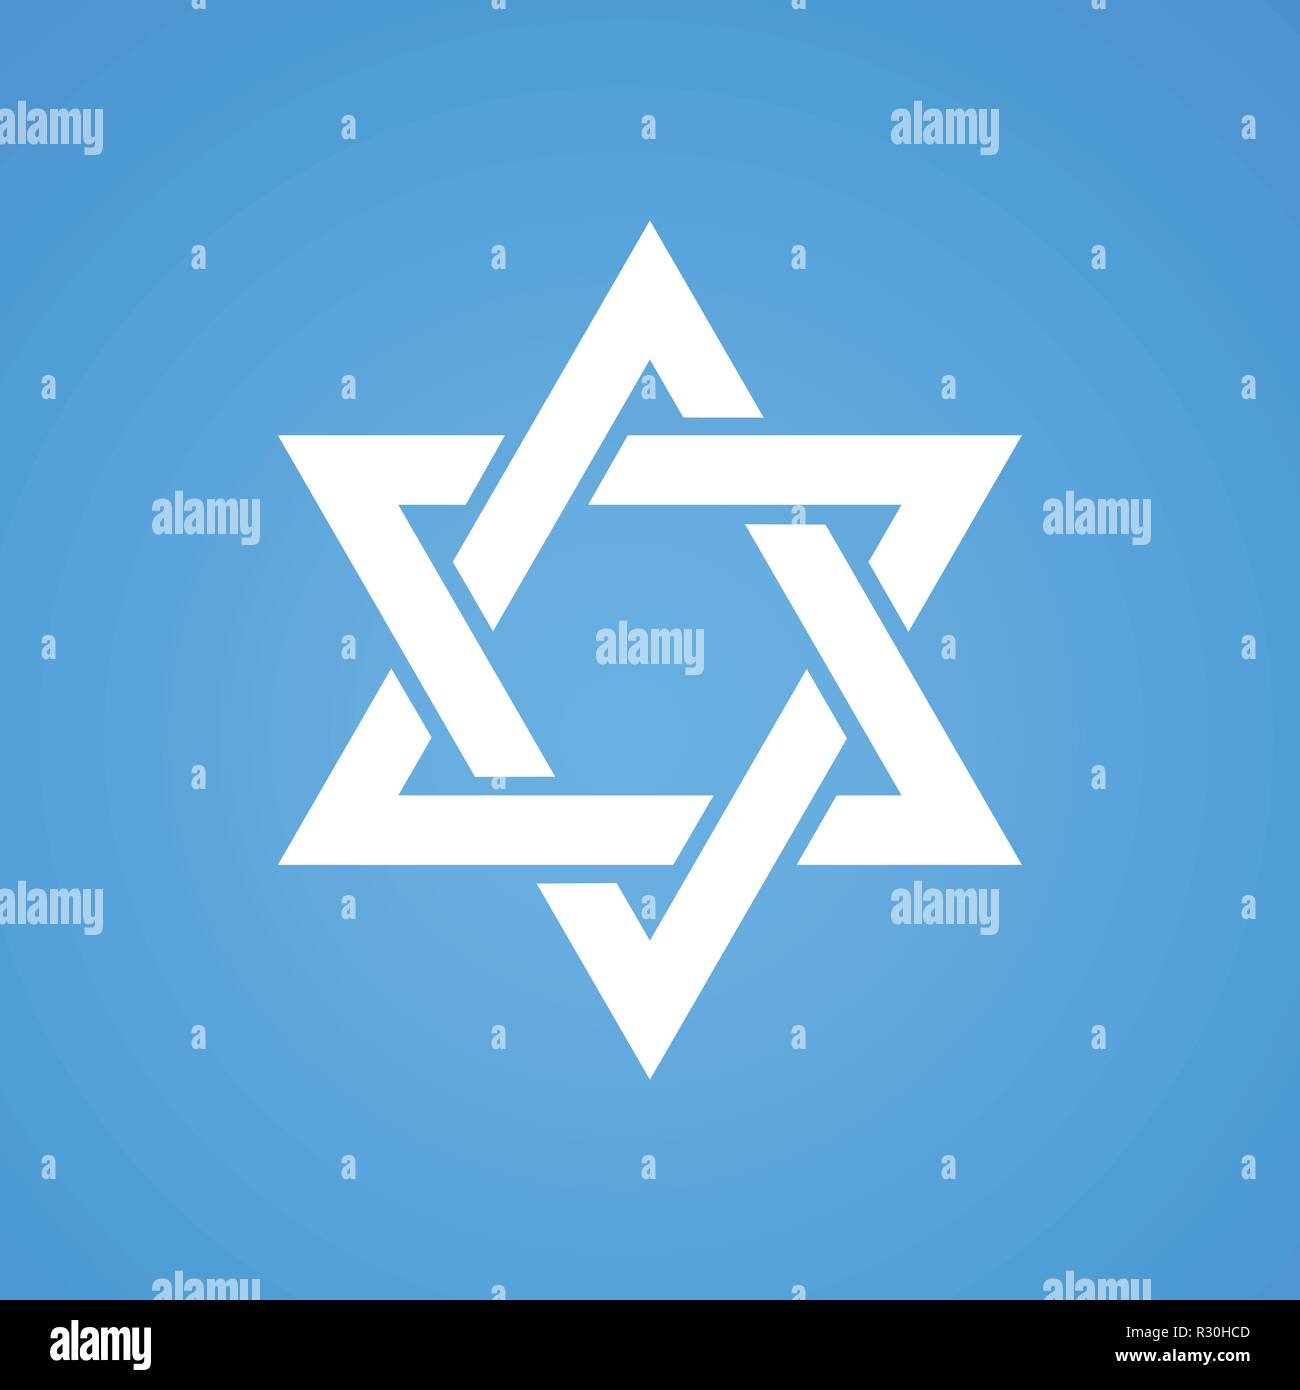 Stylized Star of David white color on blue background. Tanah Hexagram symbol of Israel judaism. Stock Vector